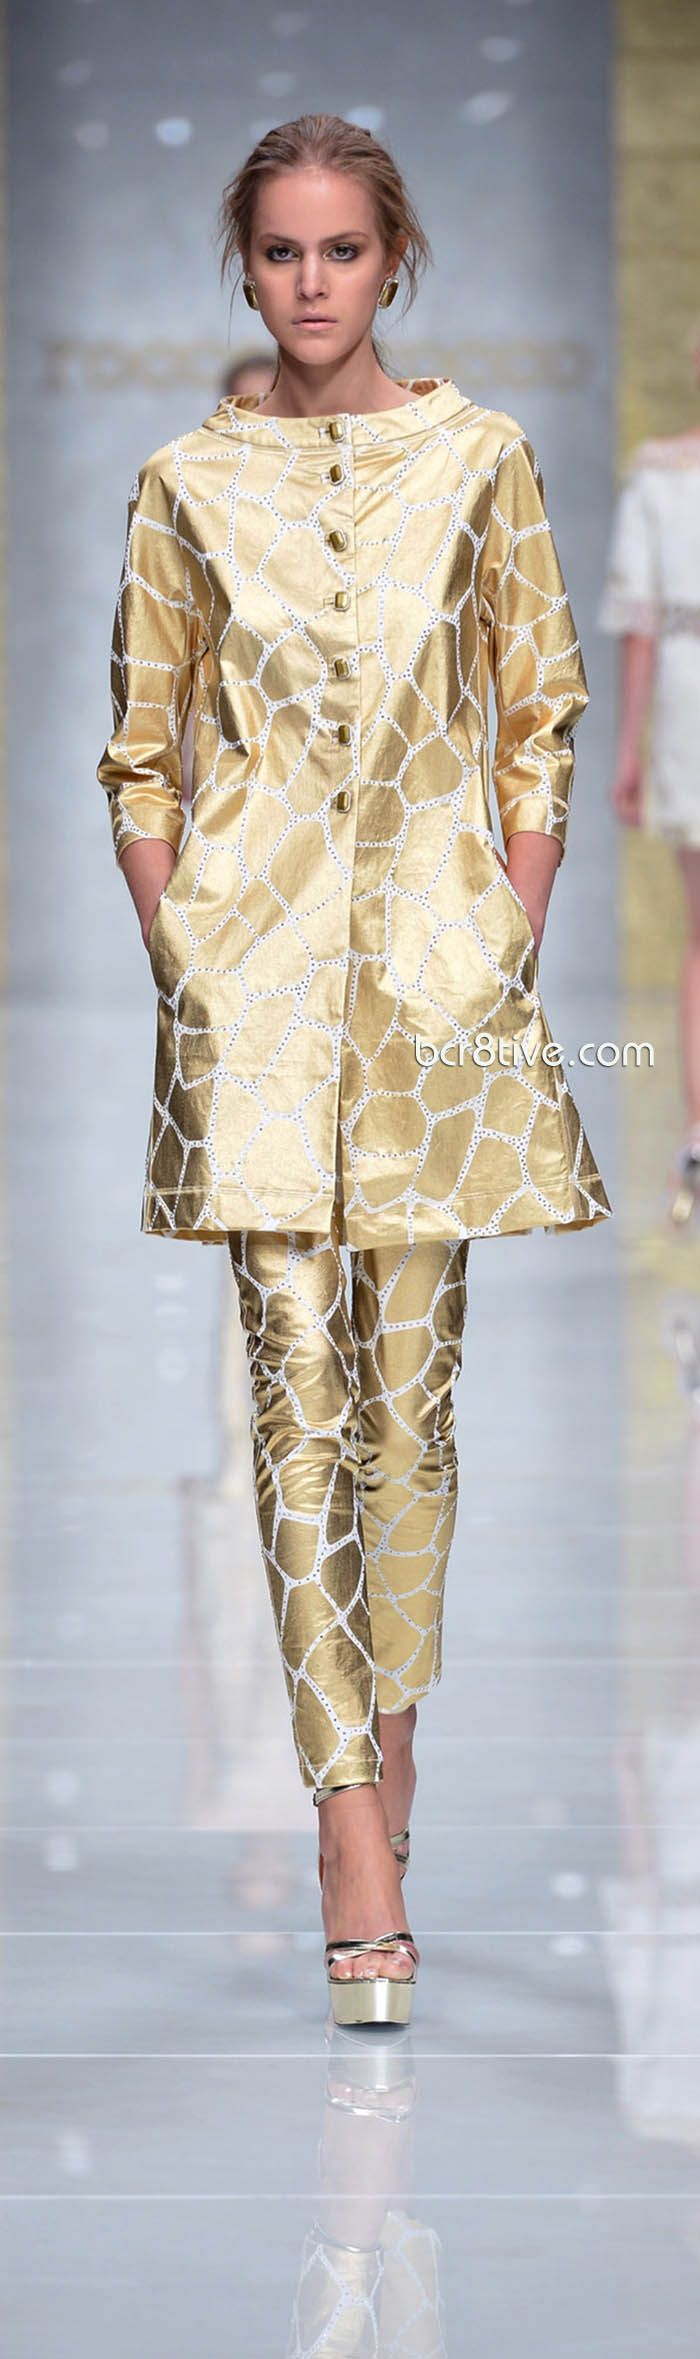 Roccobarocco Spring Summer 2013 http://www.fashion2dream.com/#!fashion-video/c1zvd #video